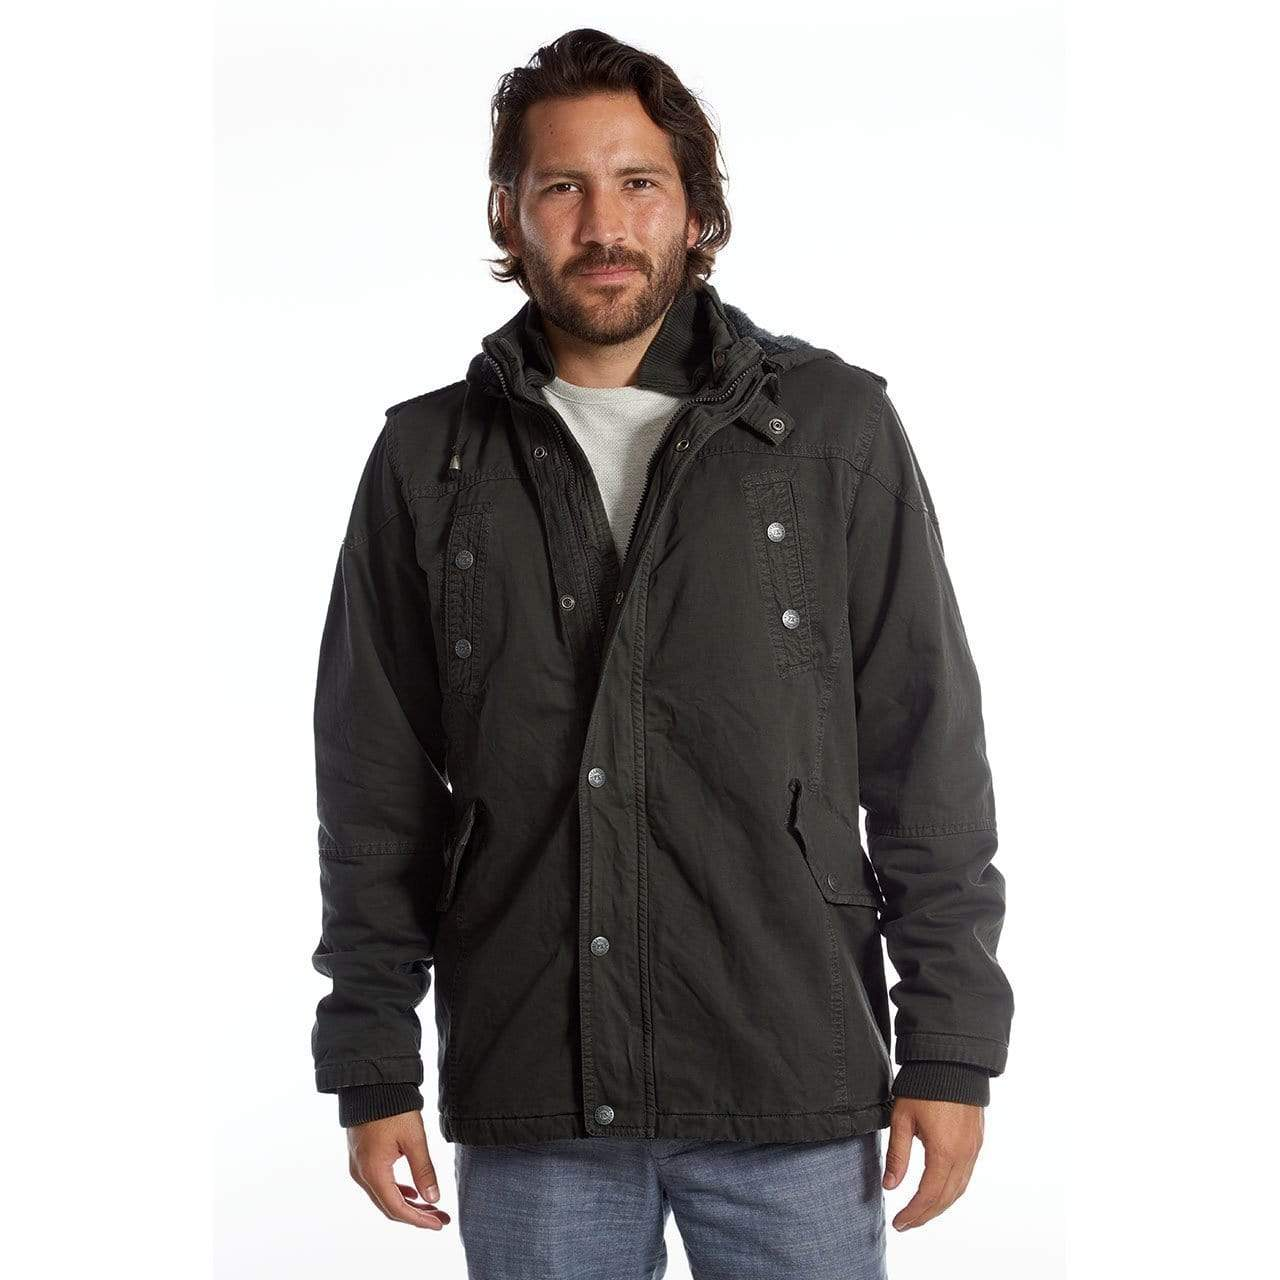 Durable Breathable Best Men's Cotton Jacket For Outdoor